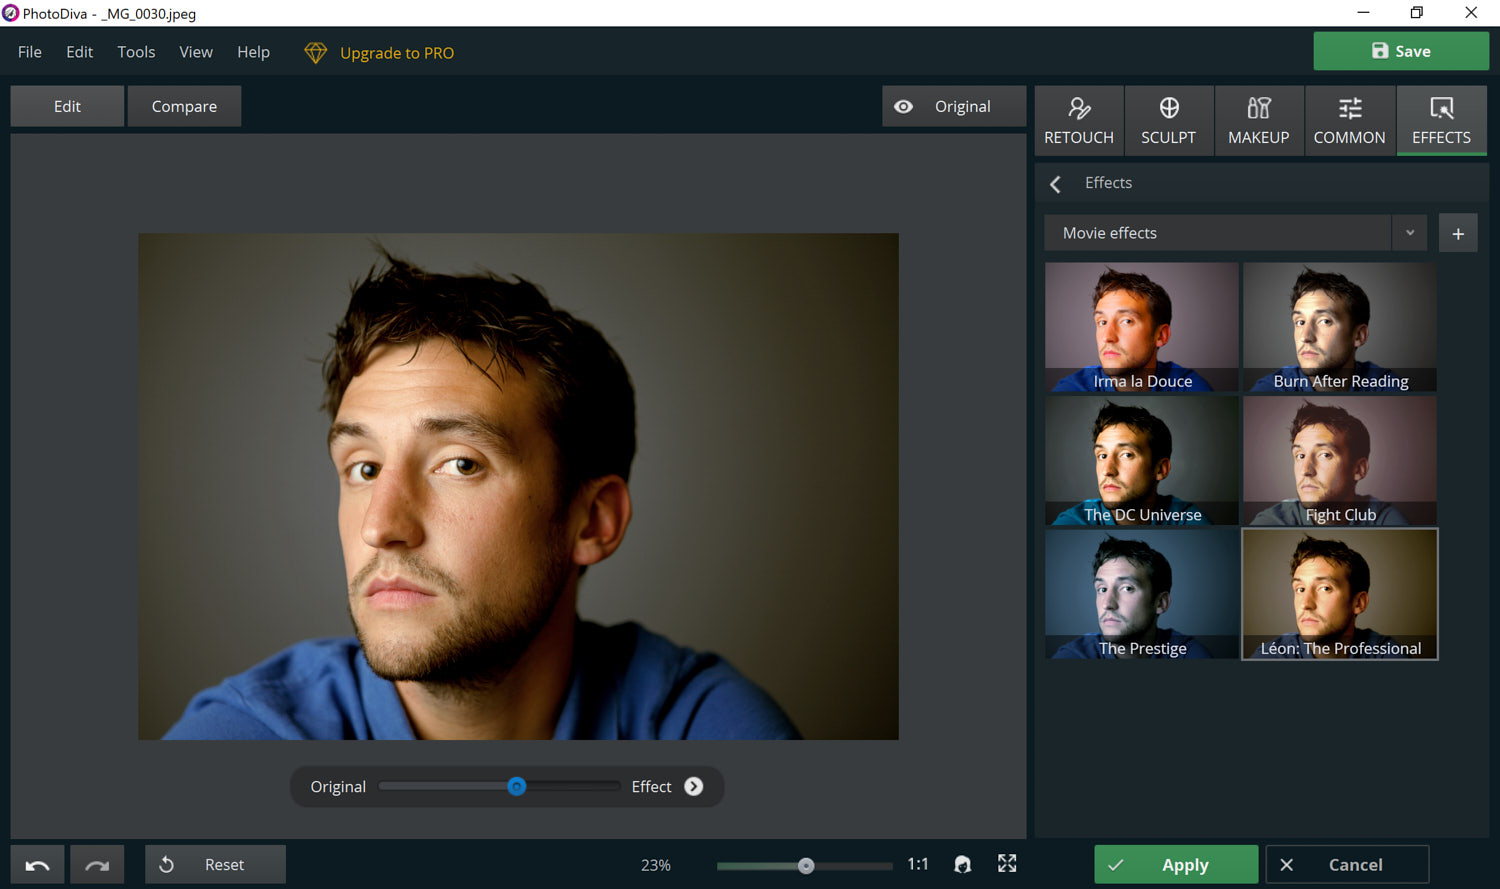 A screenshot showing a filter being applied to a photograph in post processing software